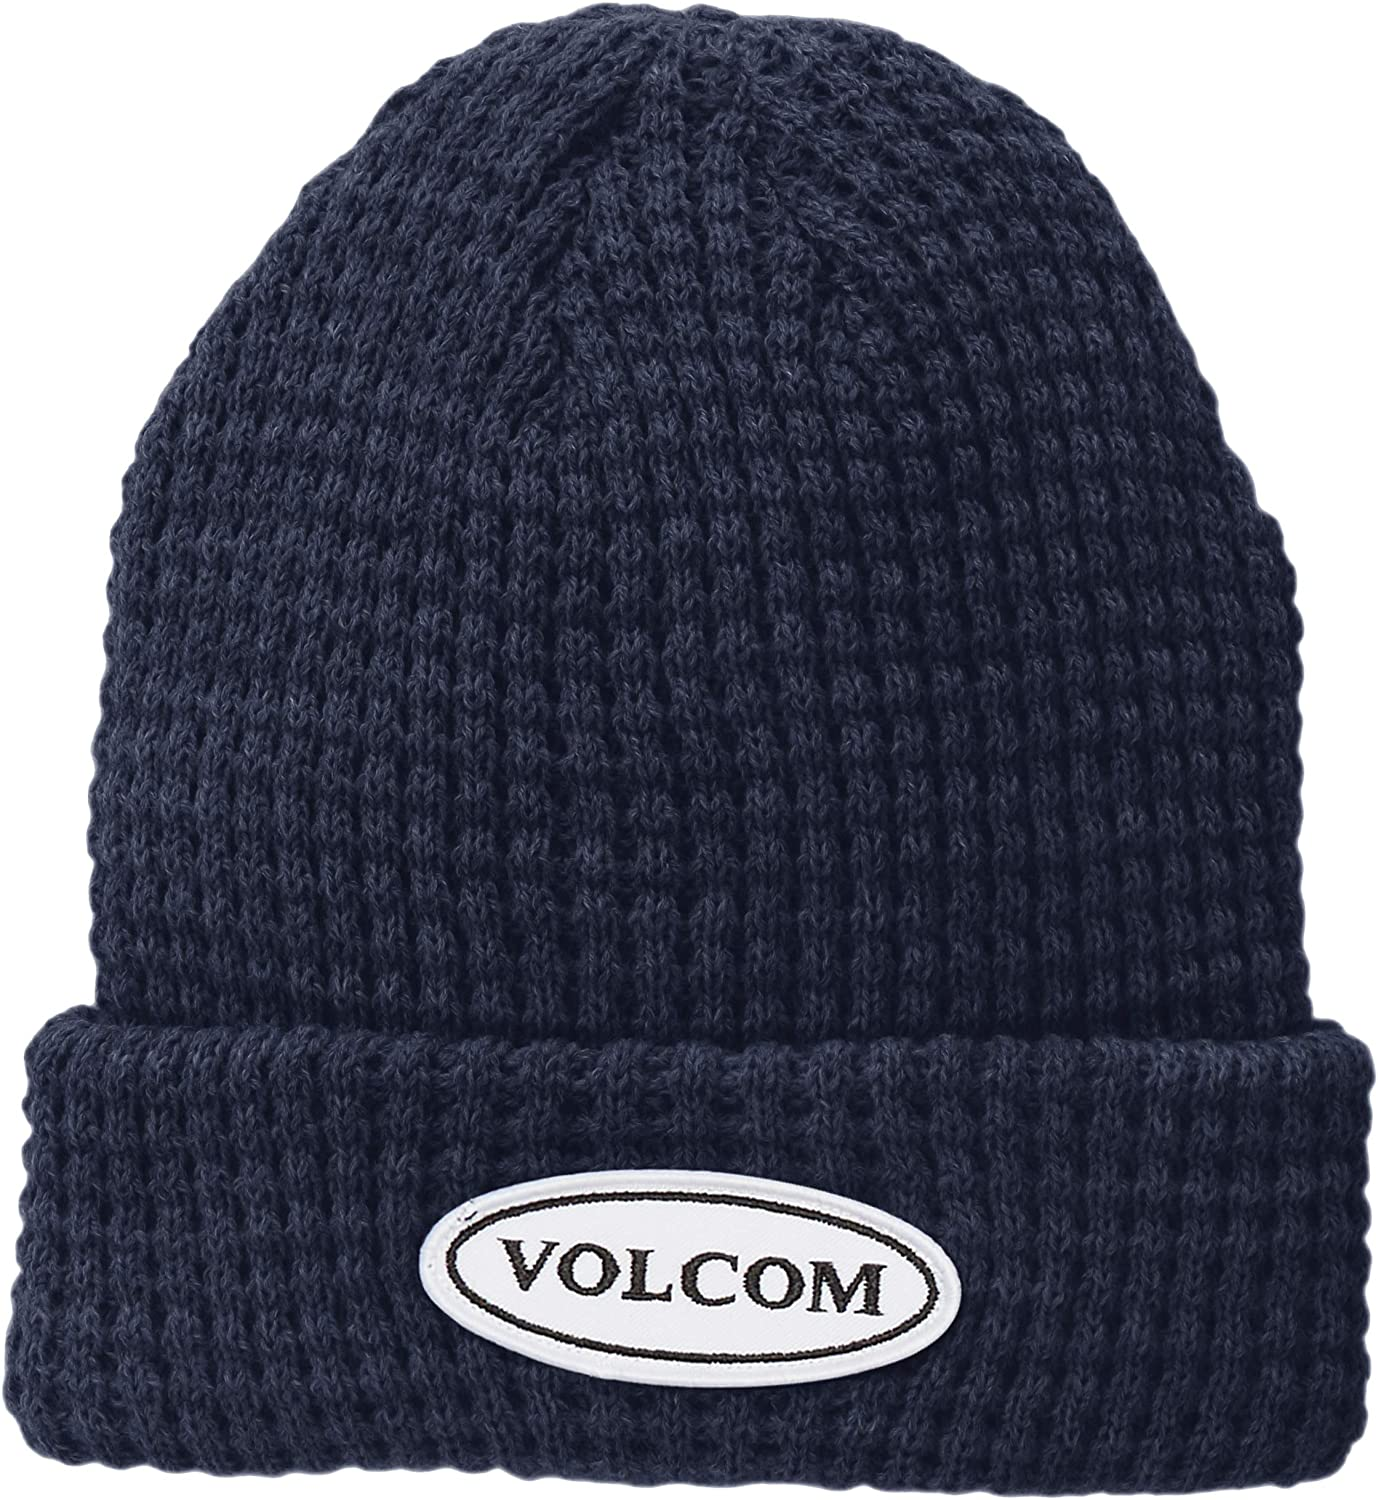 Volcom Mens Hard Core in 94 Waffle Knit Beanie